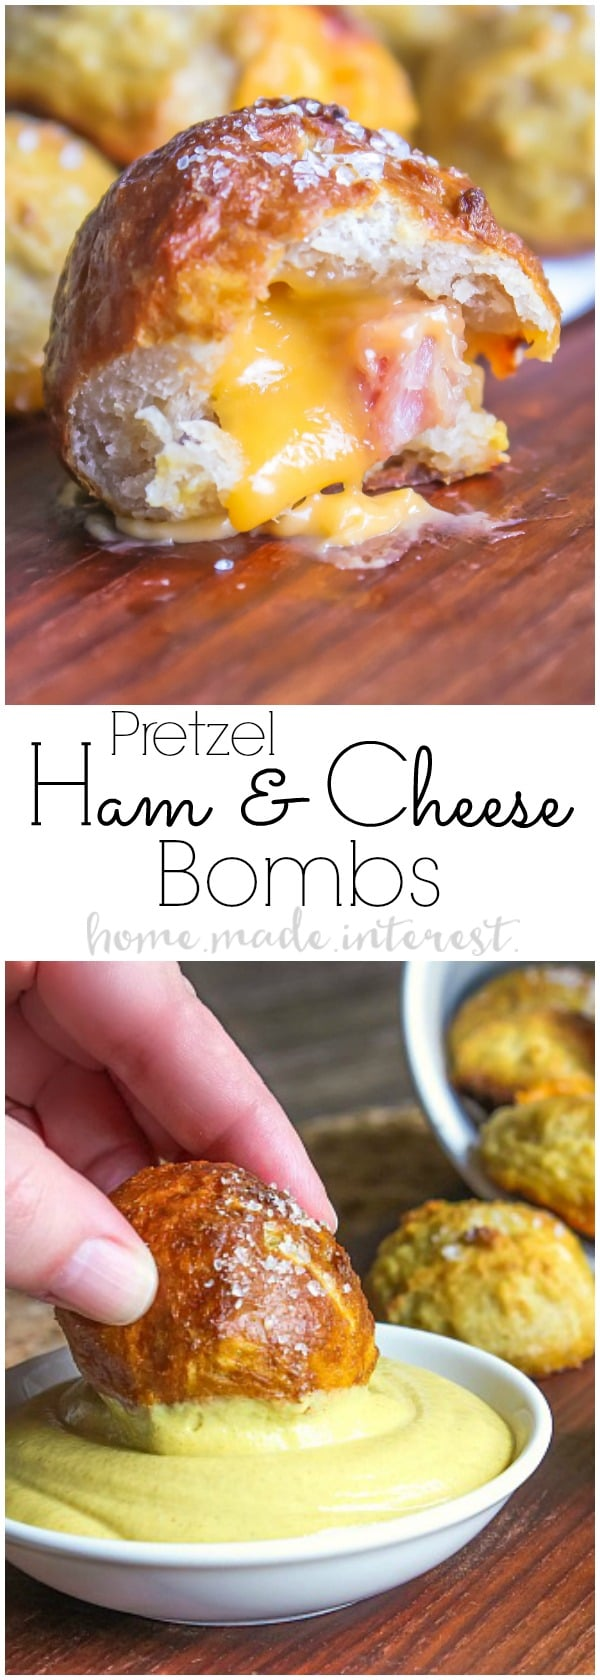 These ham and cheese pretzel bombs are pretzel dough stuffed with cheese and delicious ham. They are an easy appetizer recipe that is a great way to use leftover ham. Ham and cheese pretzel bombs are an easy game day appetizer that are exploding with cheesy goodness!